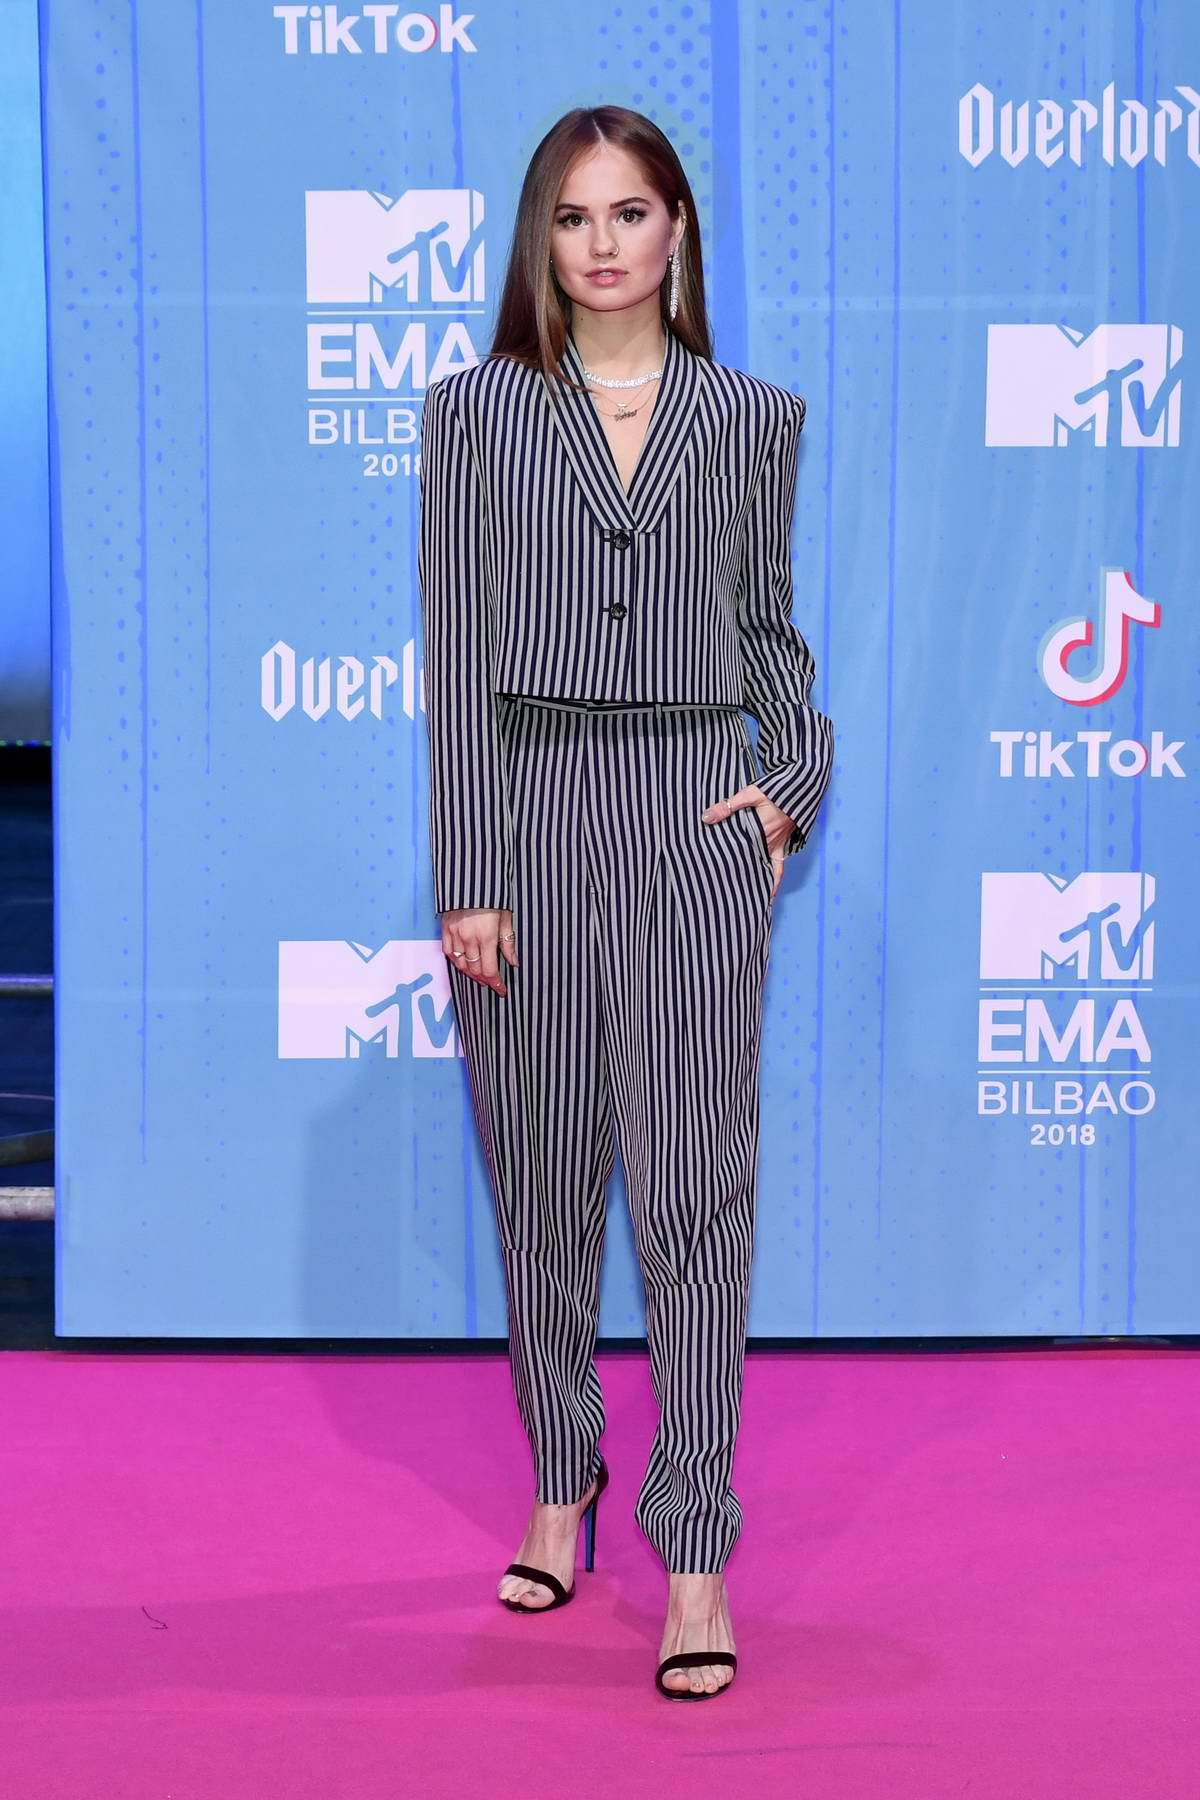 Debby Ryan attends the MTV EMAs 2018 at the Bilbao Exhibition Centre in Bilbao, Spain